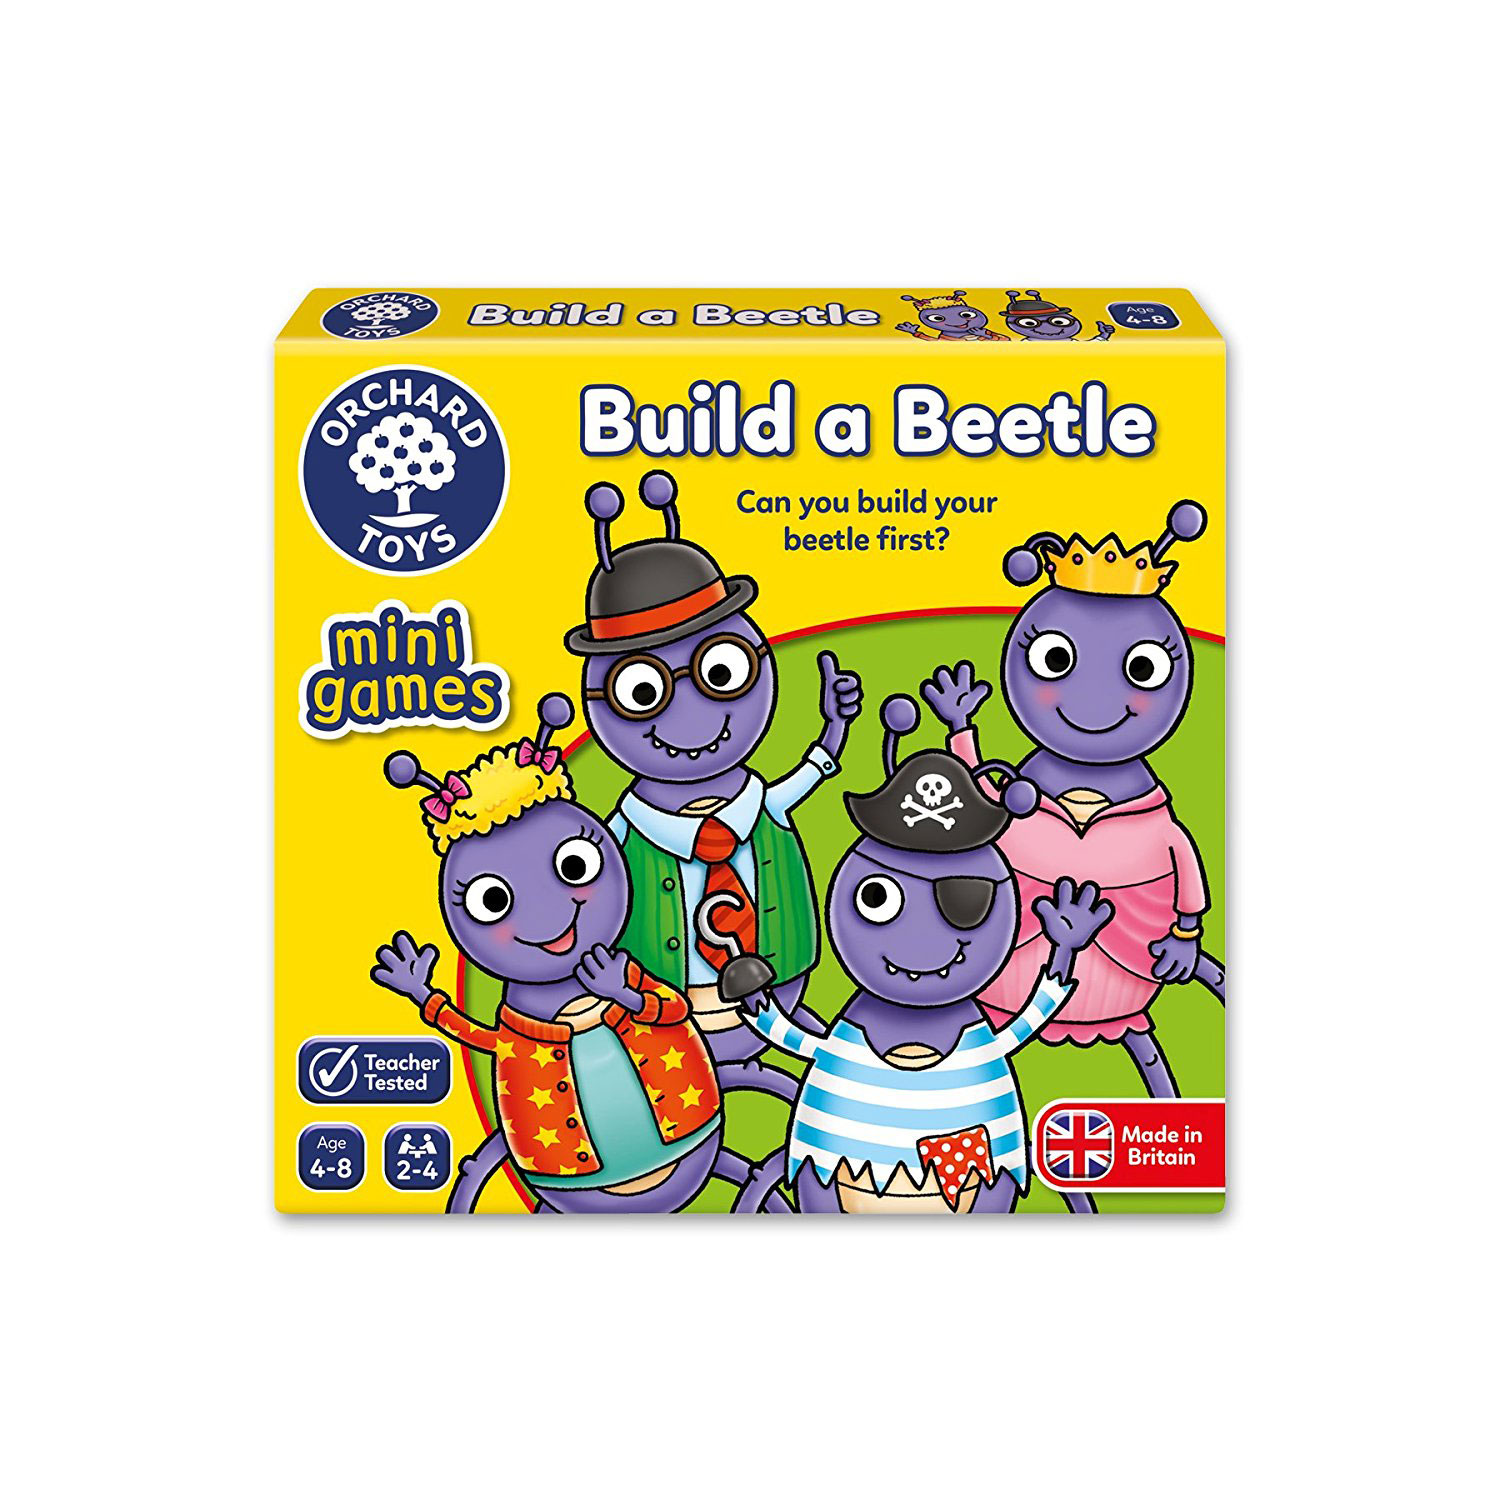 Build a Beetle Mini Game by Orchard Toys